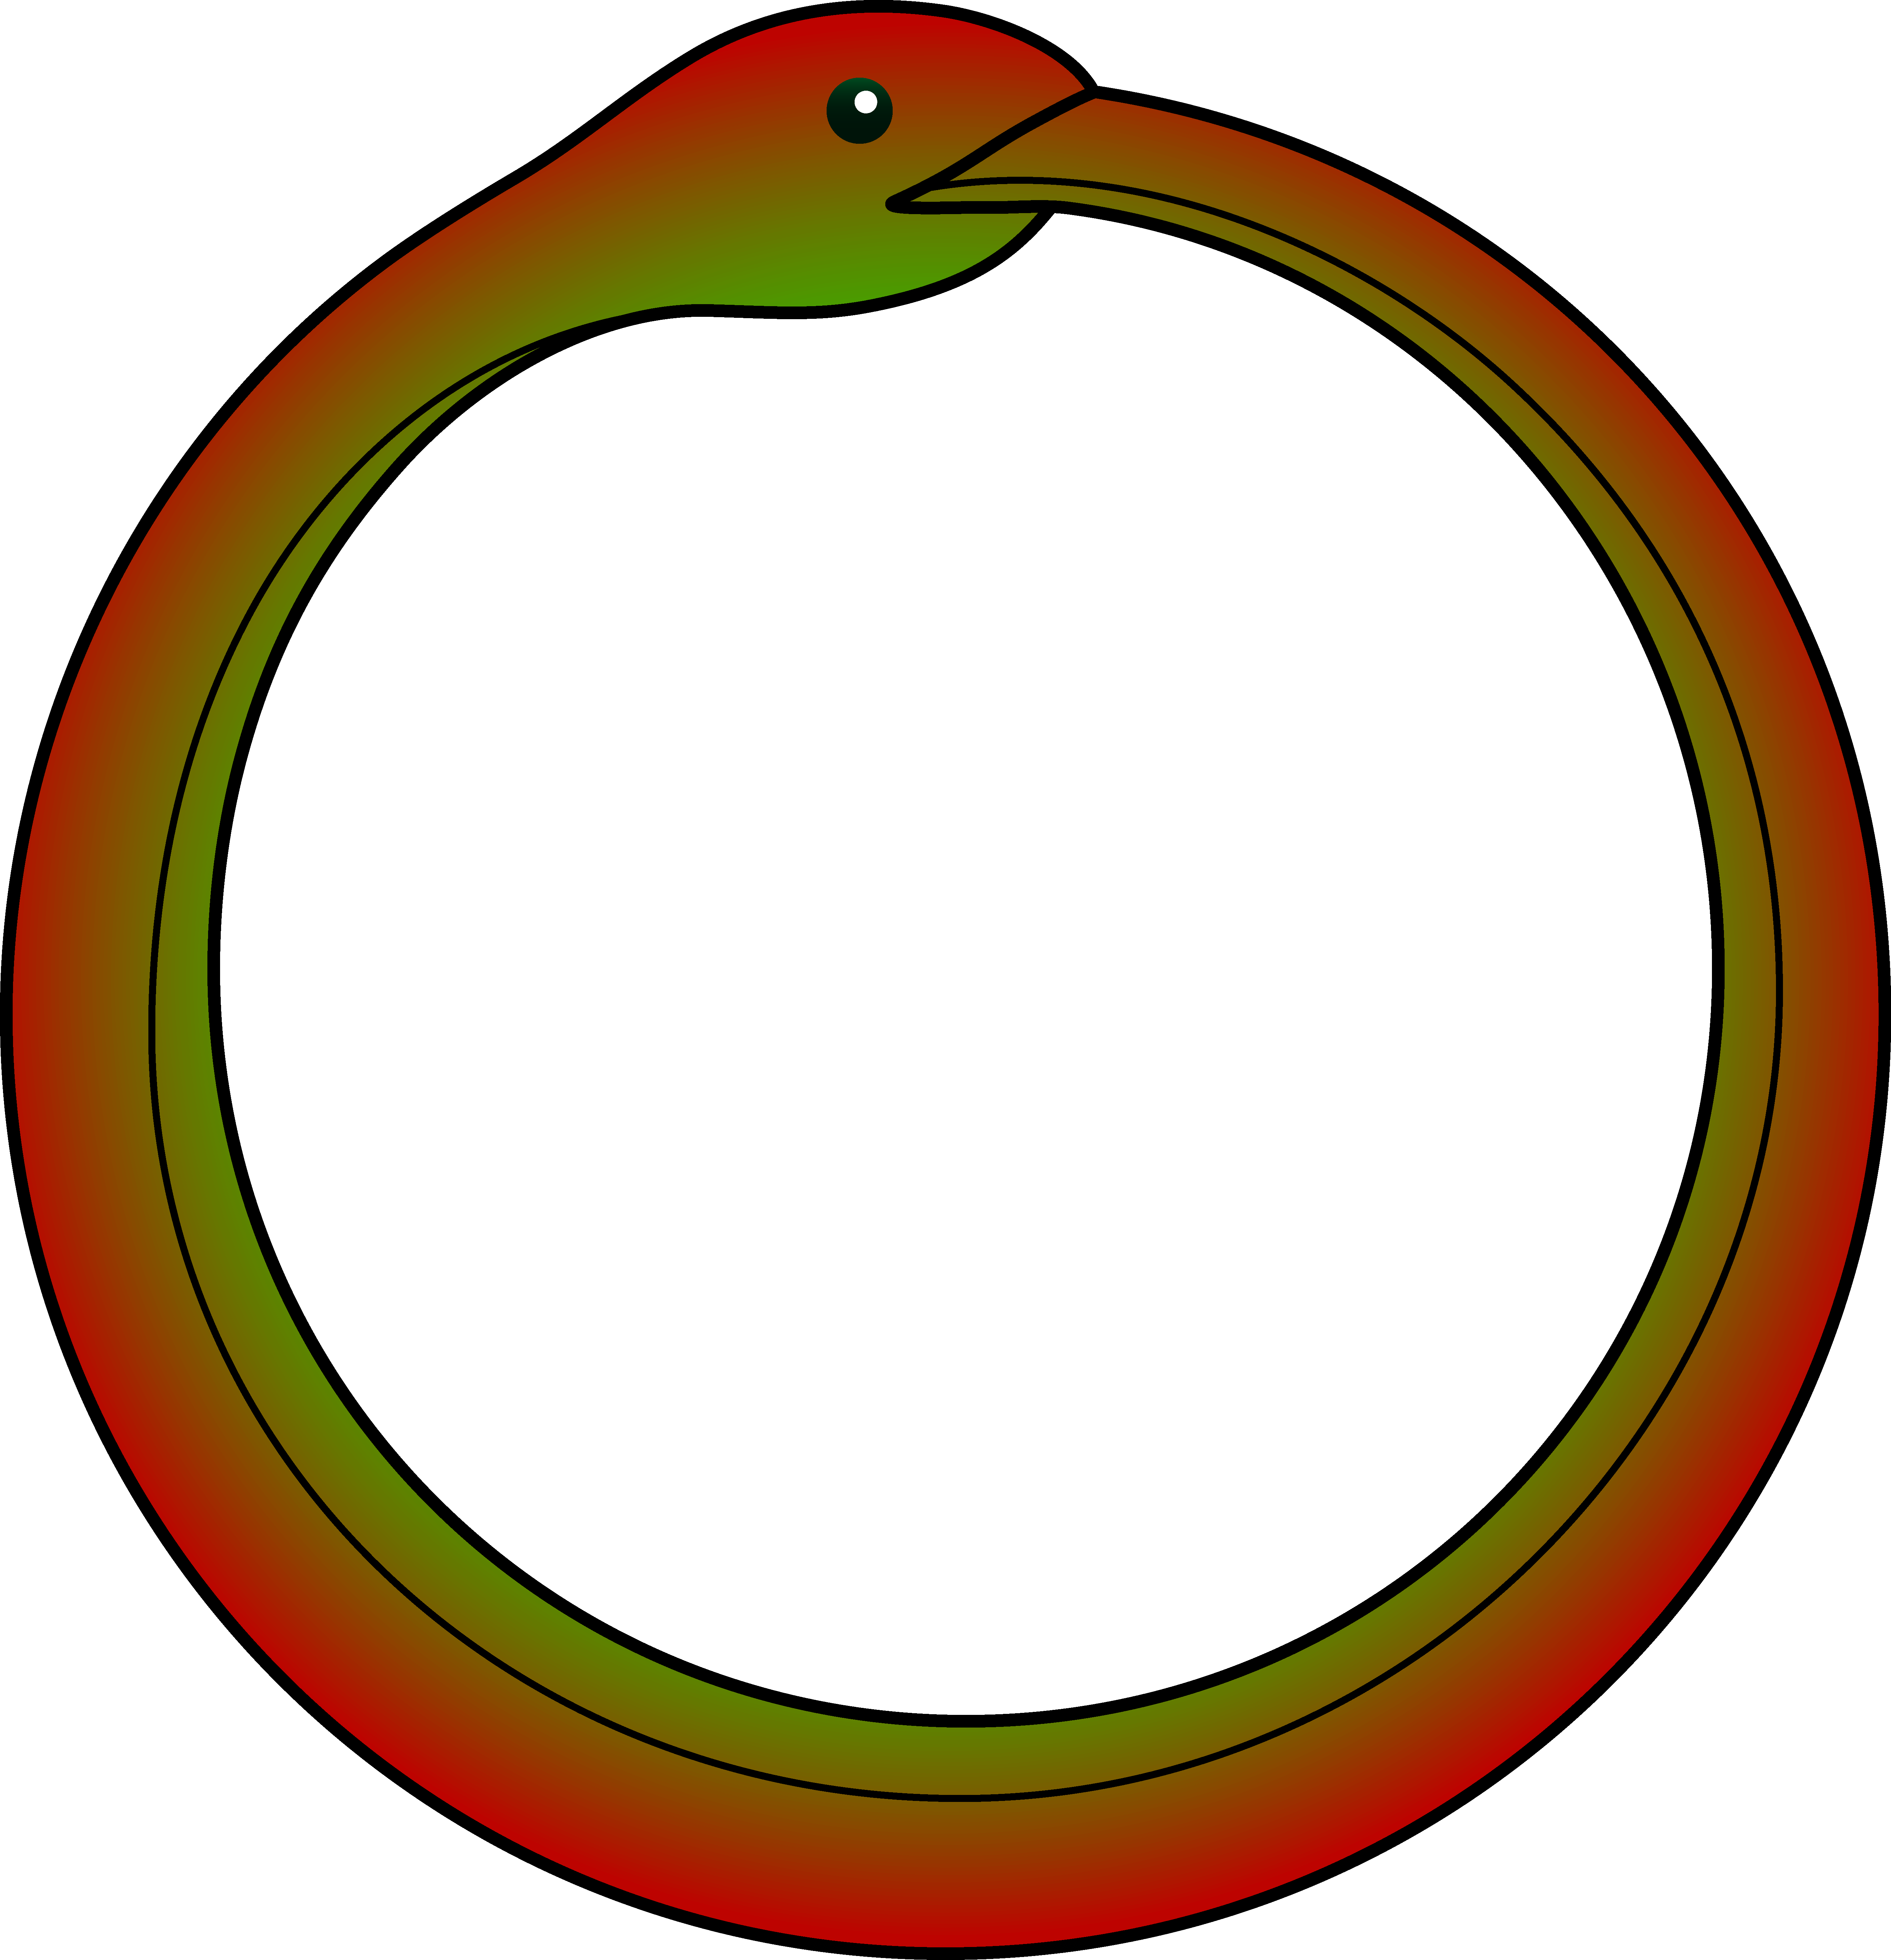 Ouroboros clipart #6, Download drawings